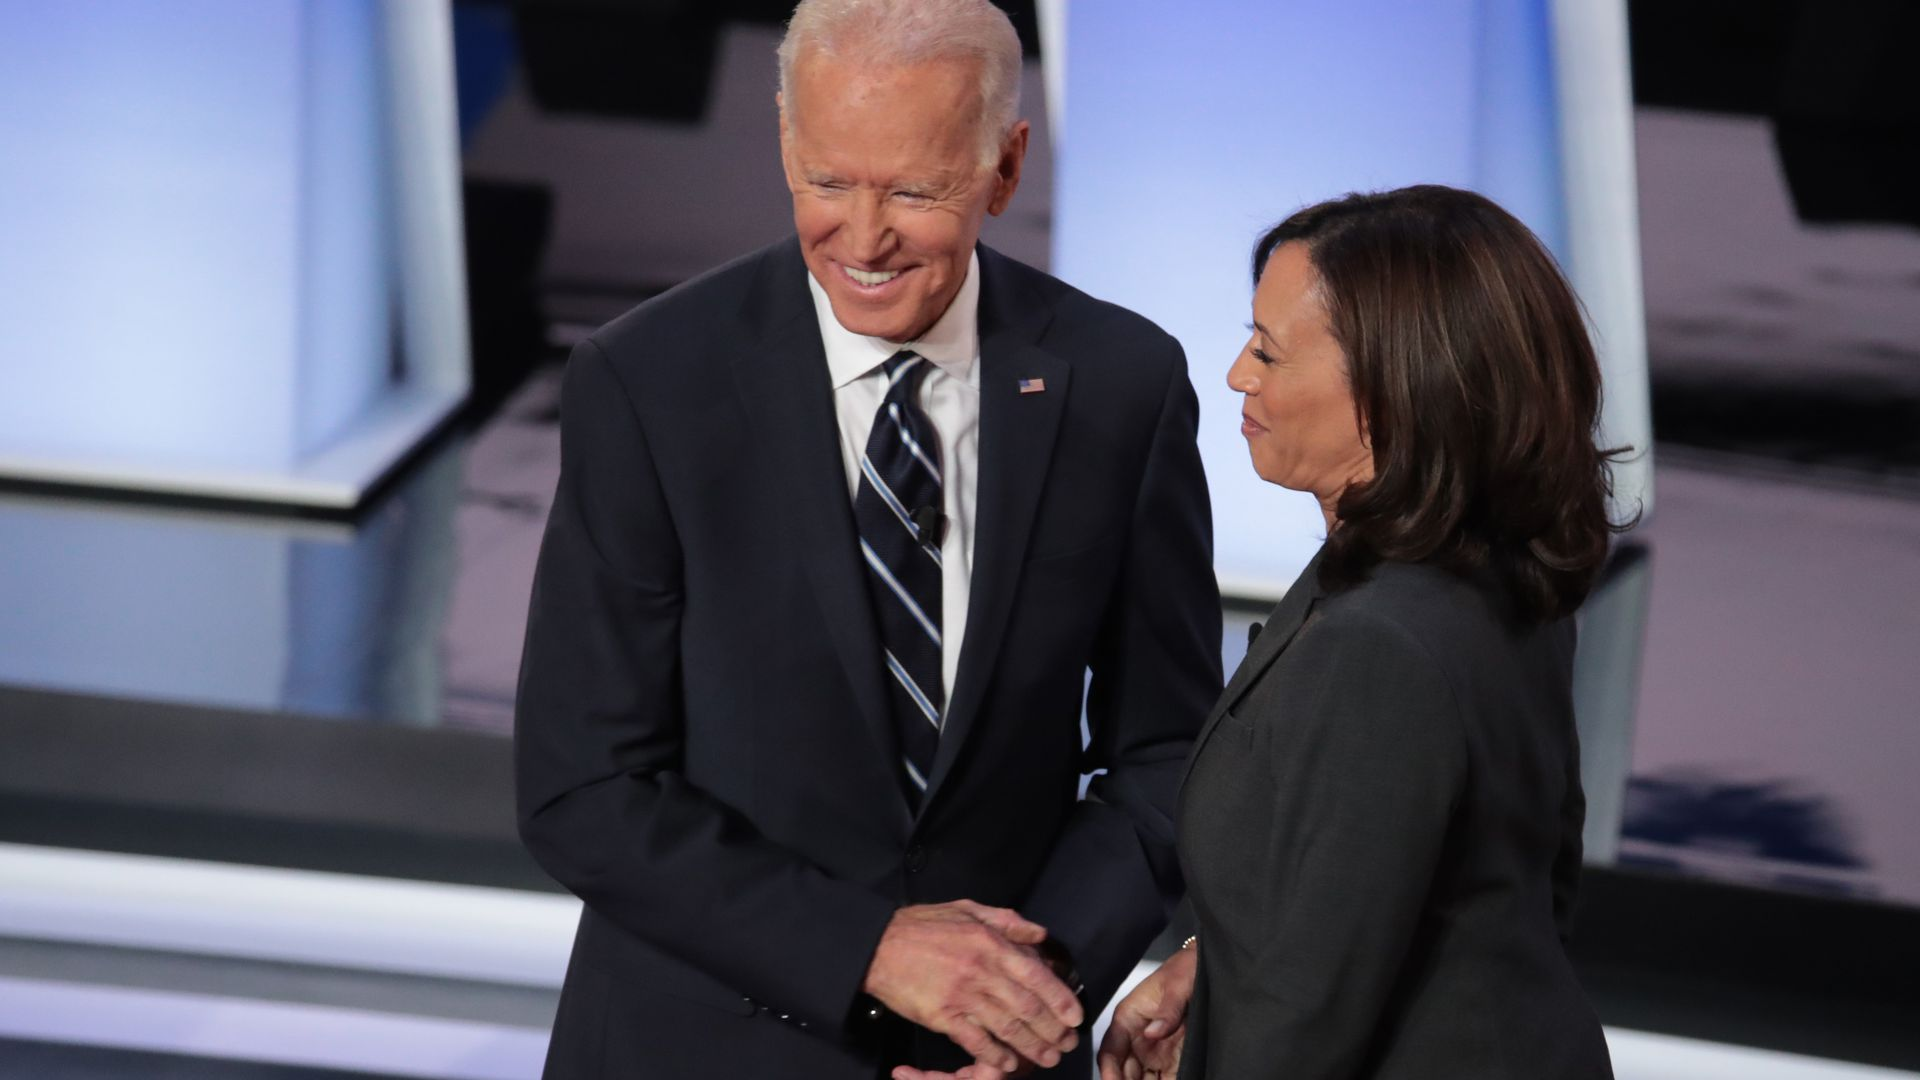 In this image, Biden and Harris shake hands and smile.